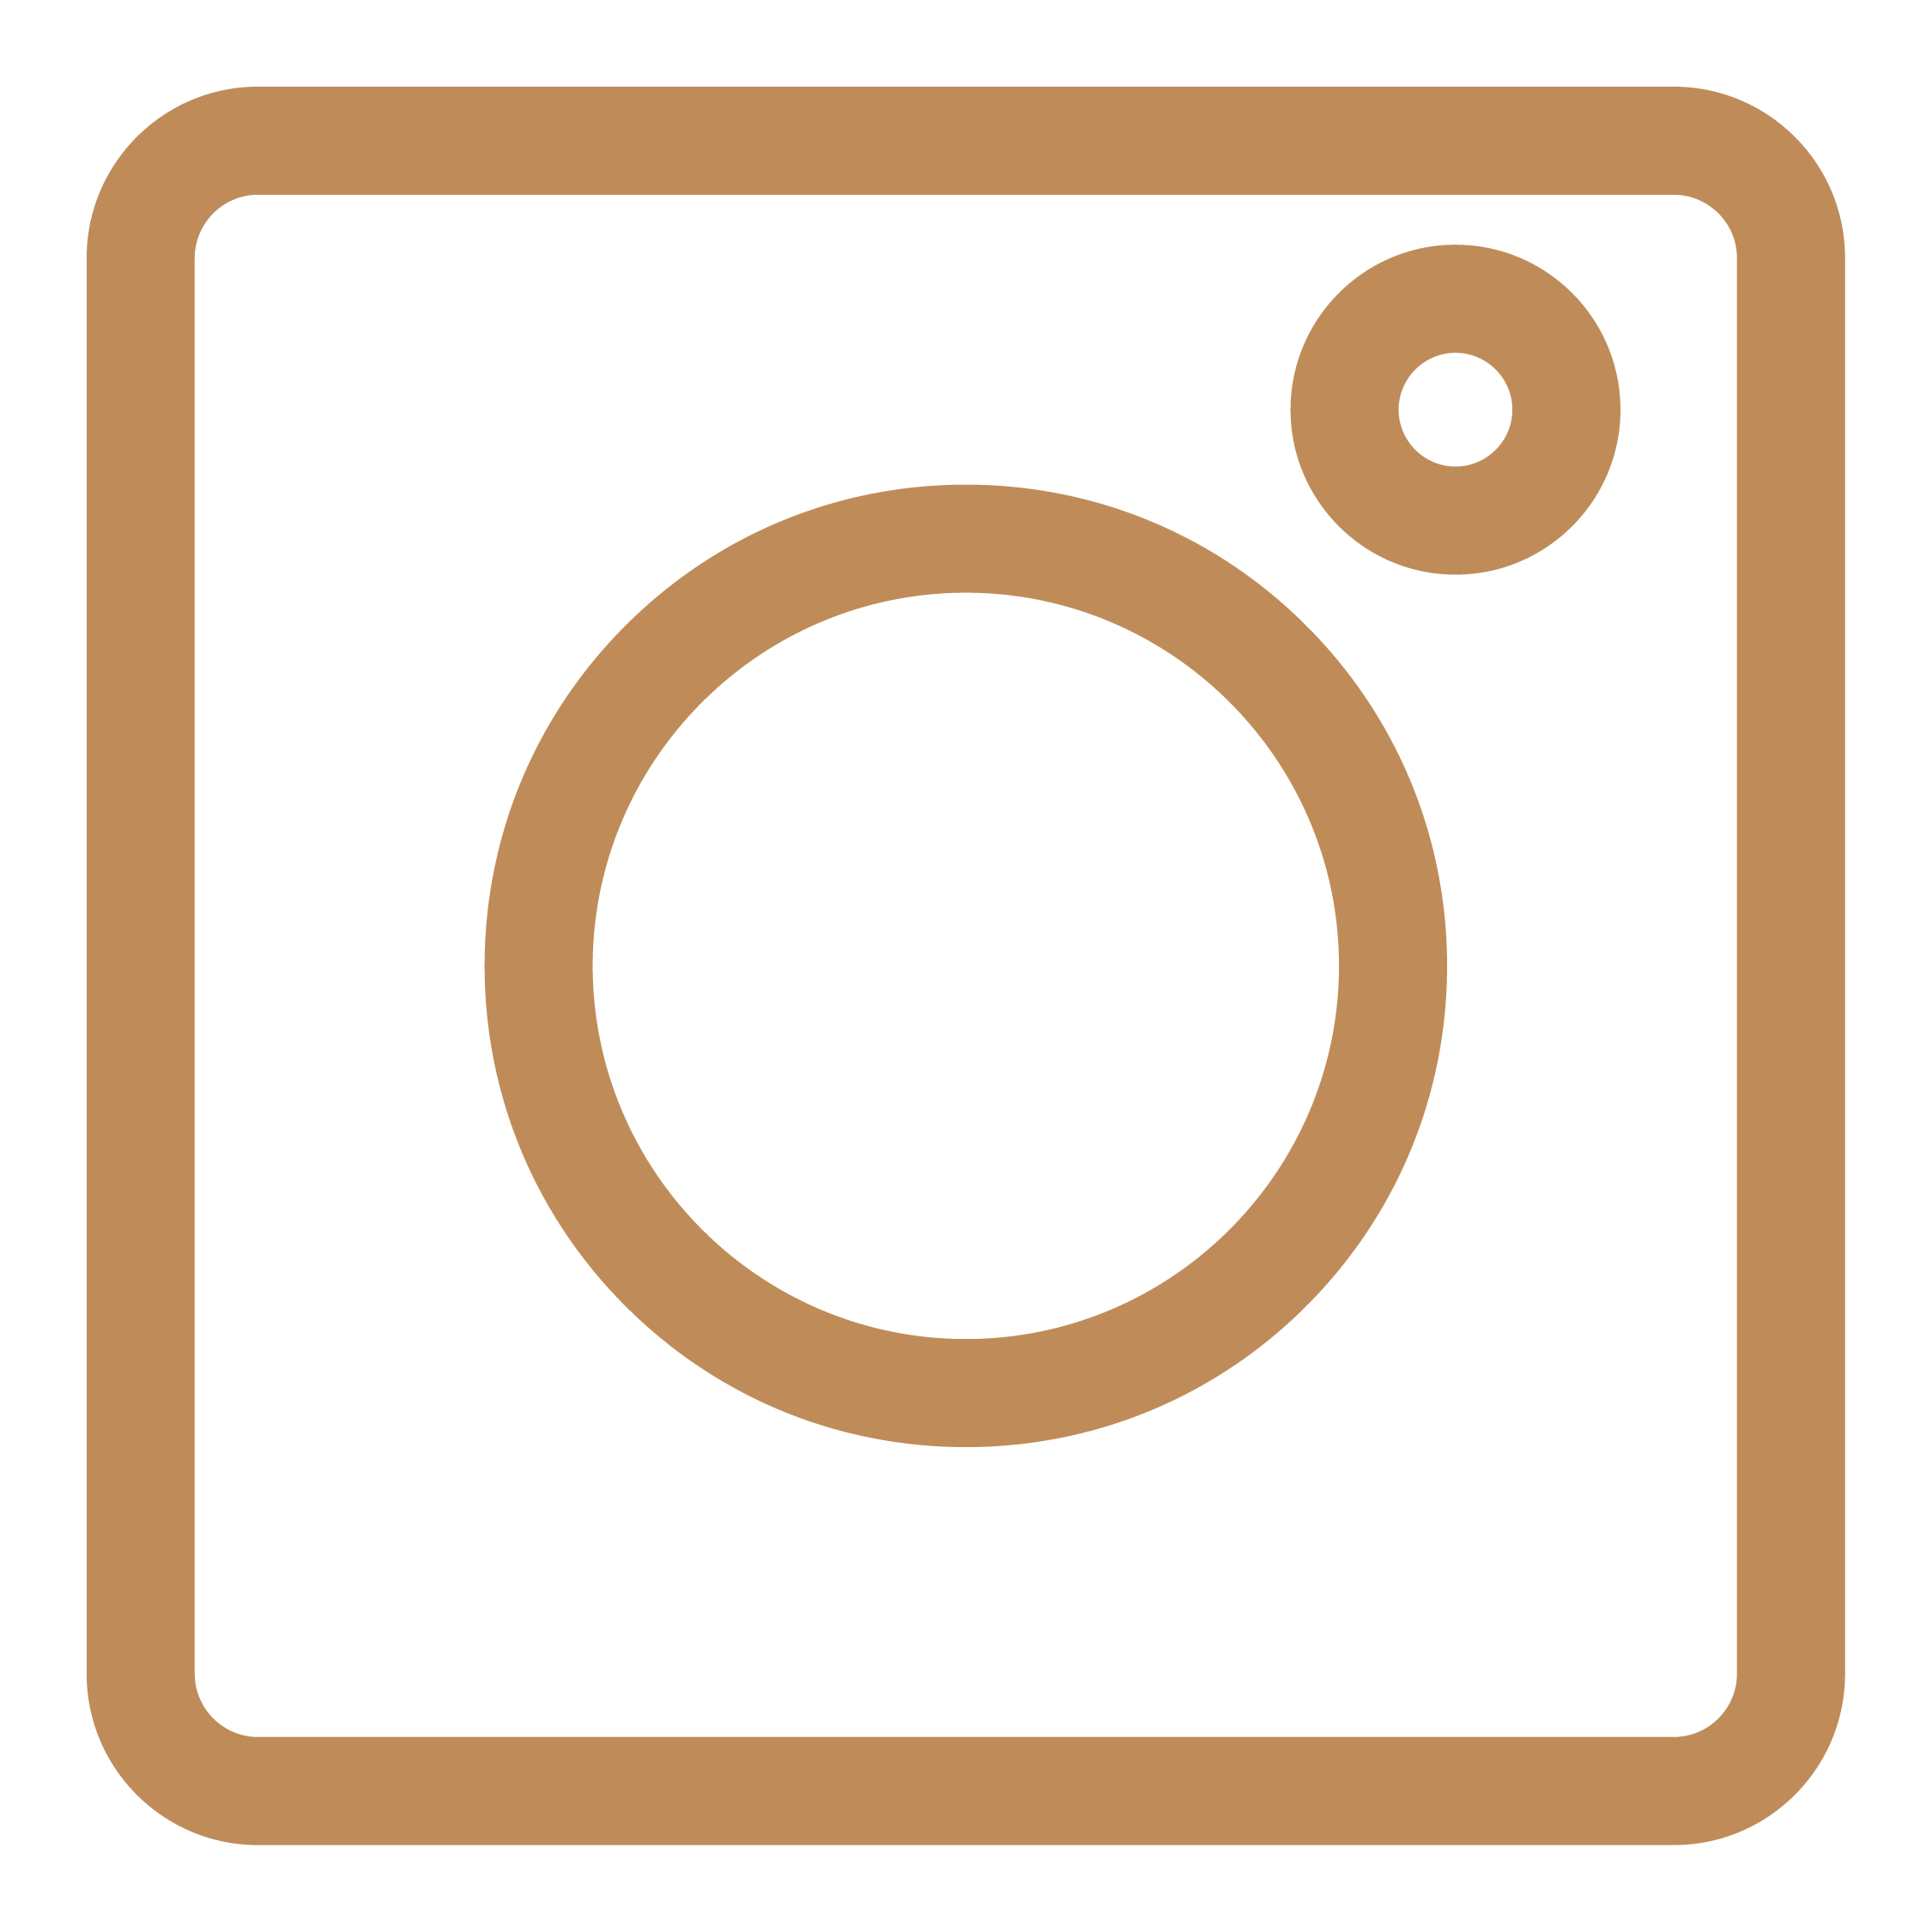 Link to social media icon